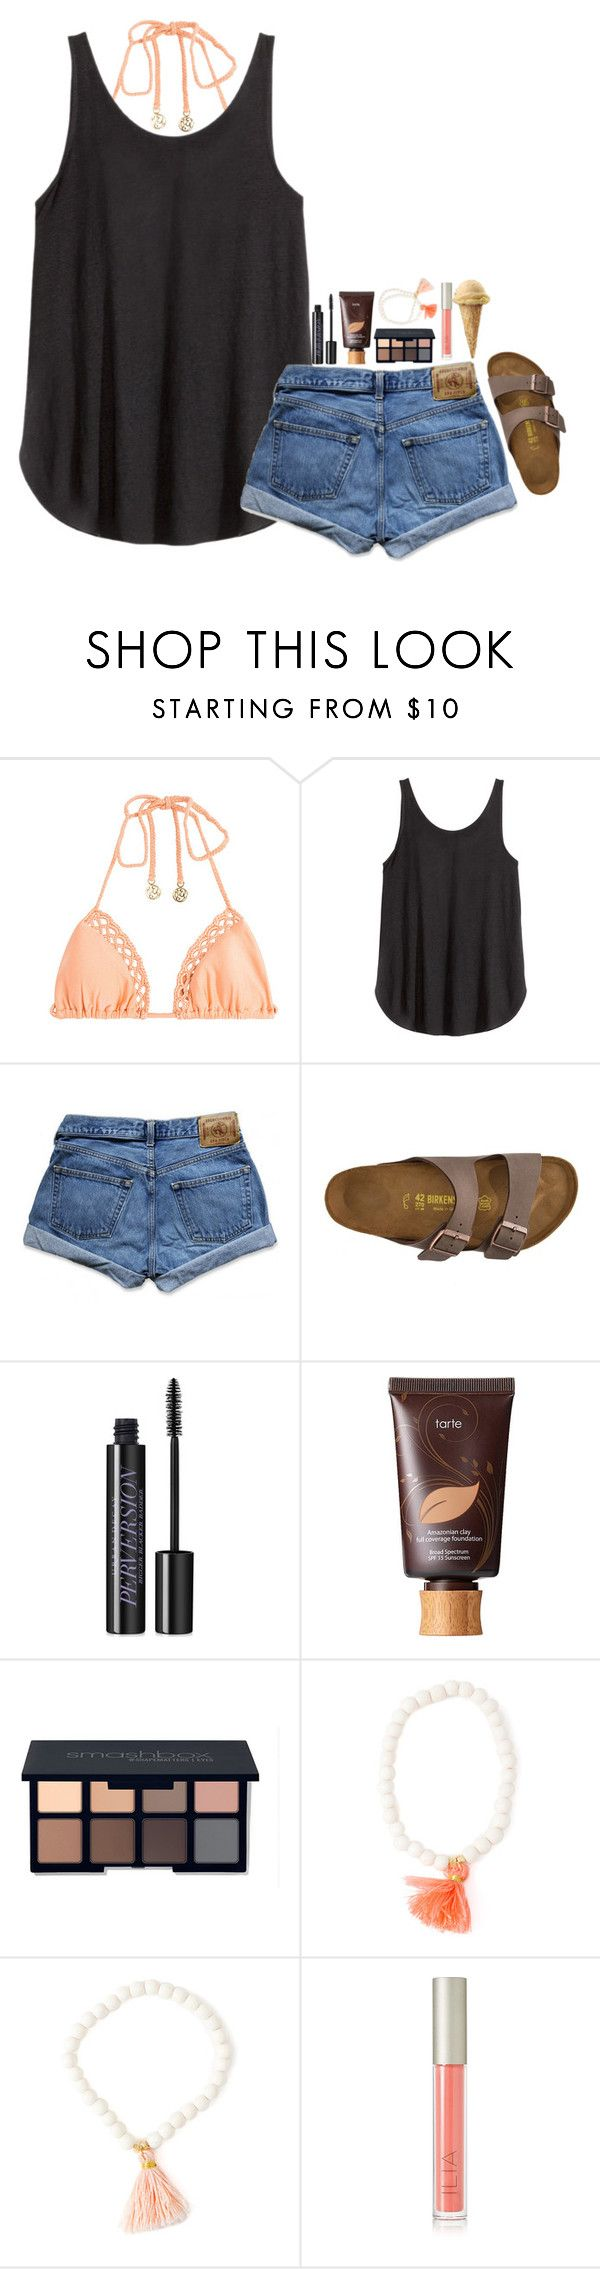 """""""contest entry// boardwalk!"""" by mehanahan ❤ liked on Polyvore featuring Luli Fama, H&M, Abercrombie & Fitch, Birkenstock, Urban Decay, tarte, Smashbox and Ilia"""